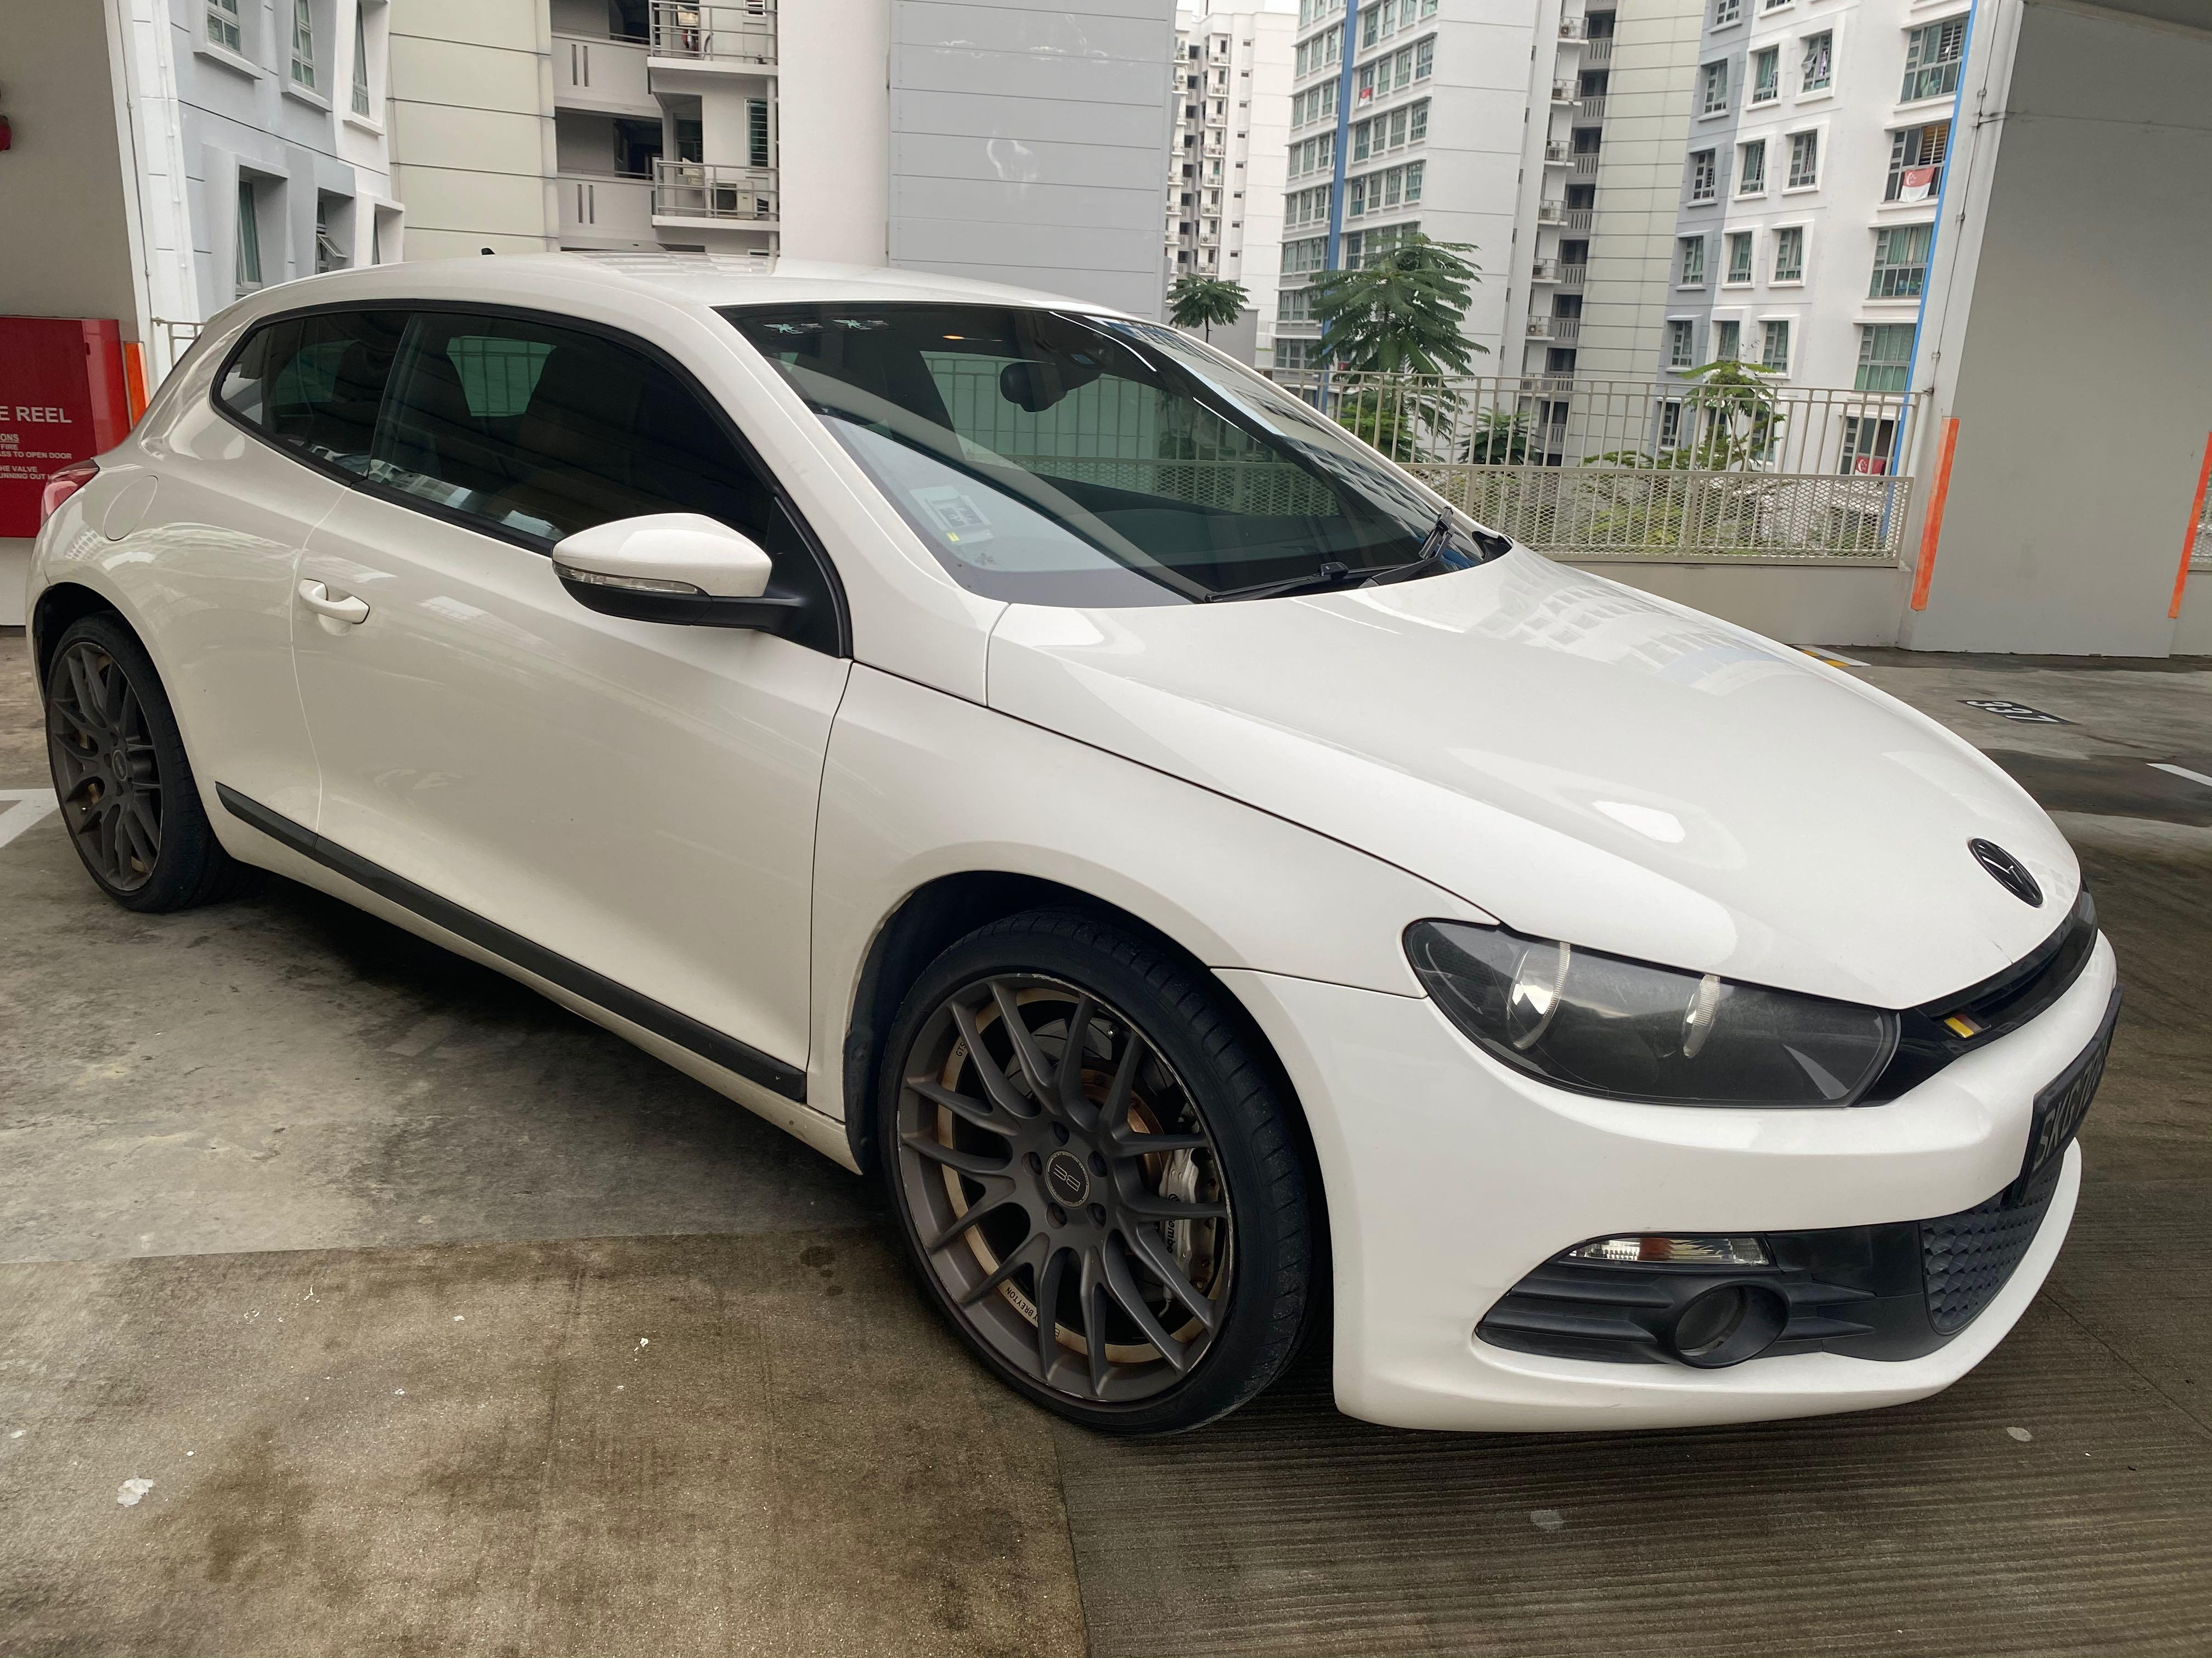 Scirocco 1.4 T for rent